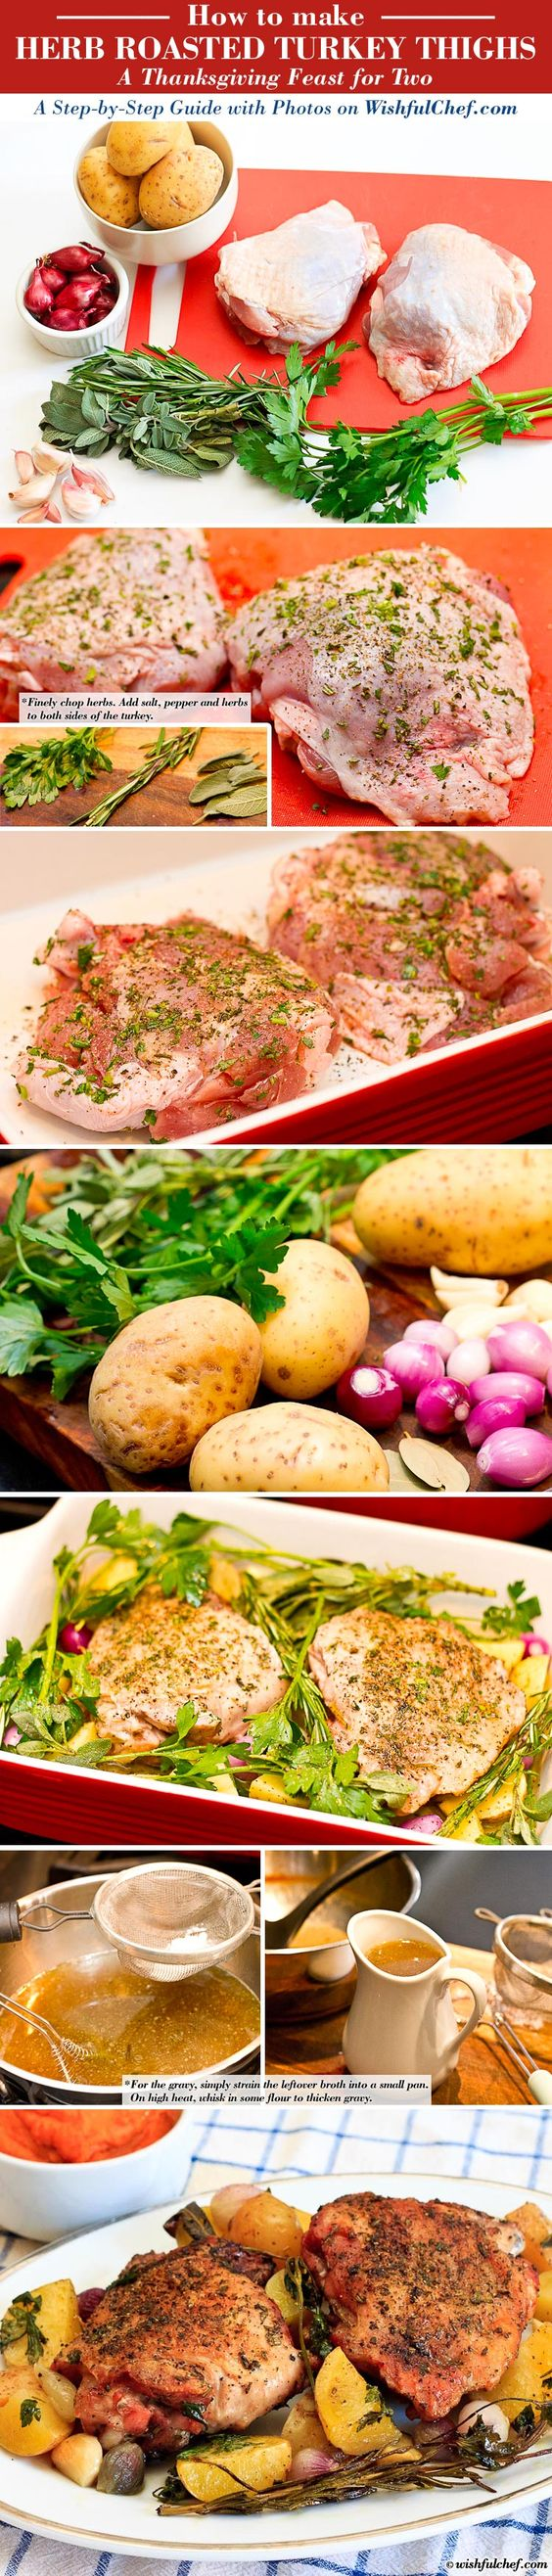 Roasted Turkey Thighs - A Thanksgiving Feast for Two | Turkey, Thighs ...